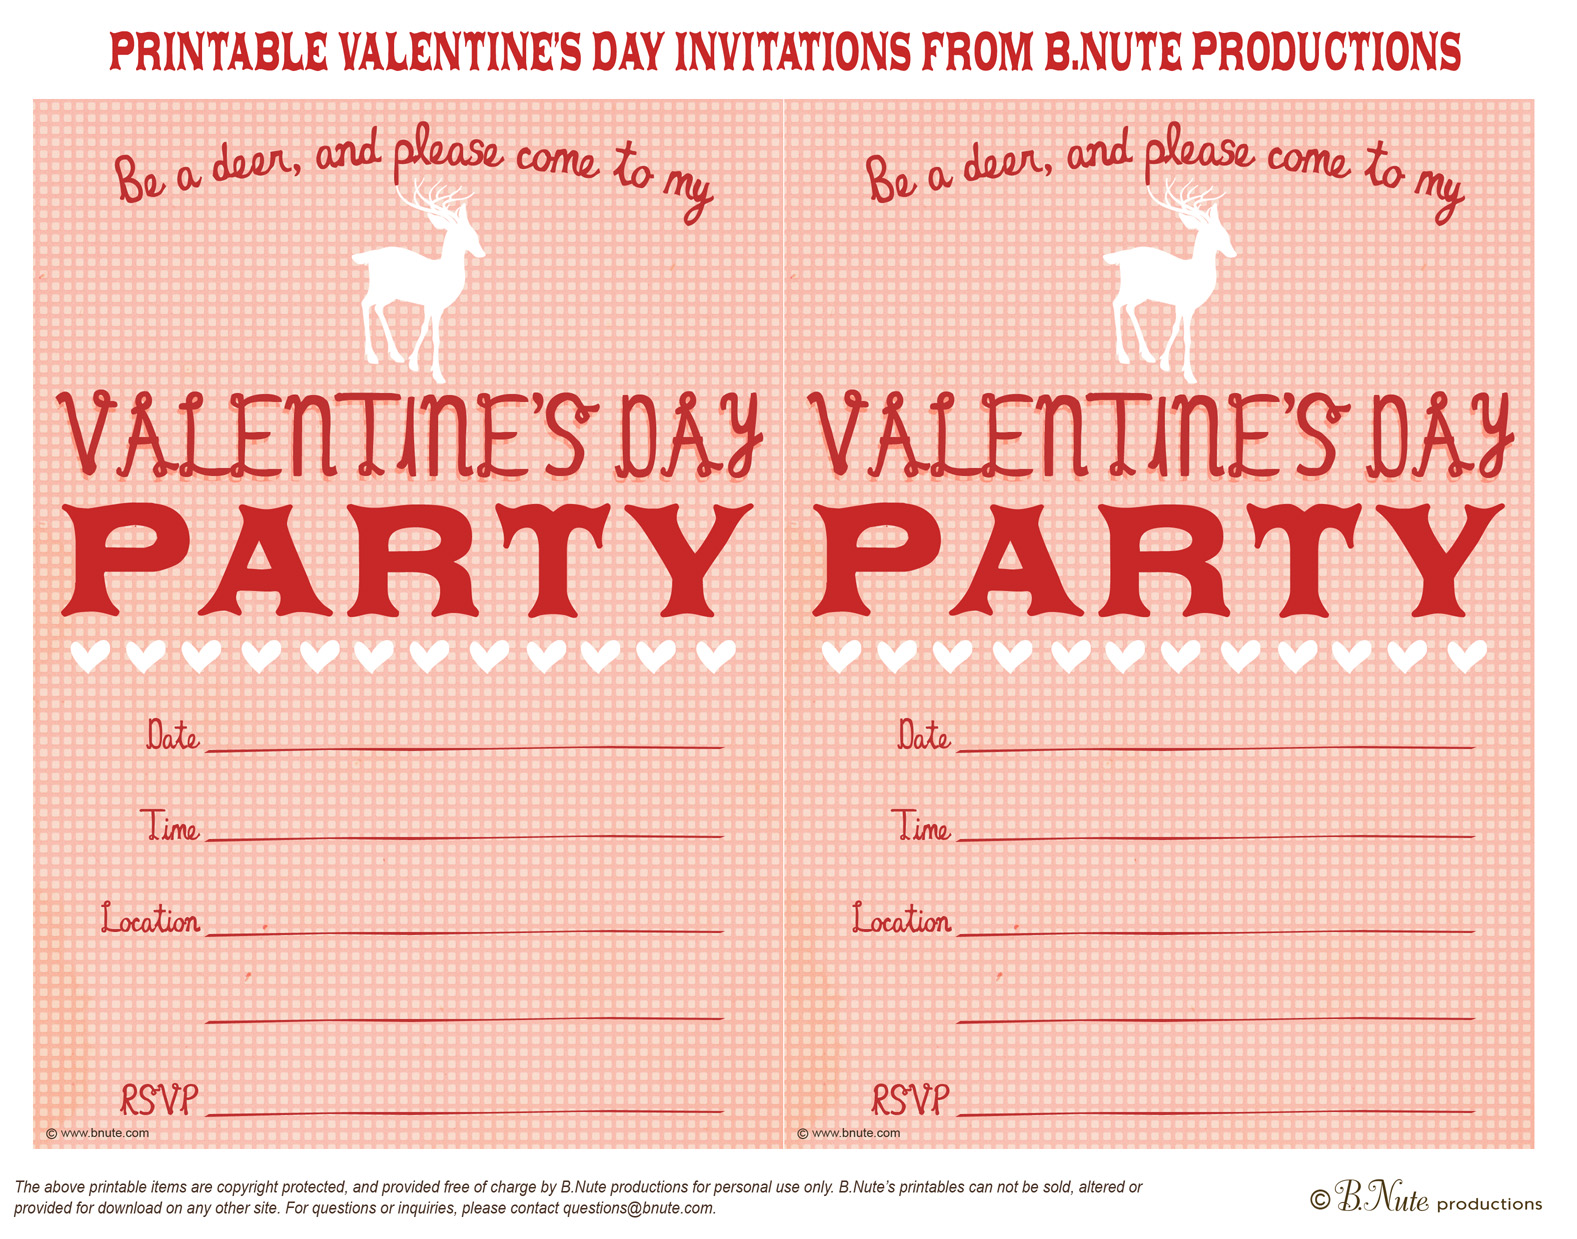 bnute productions Free Printable Valentines Day Party Invitation